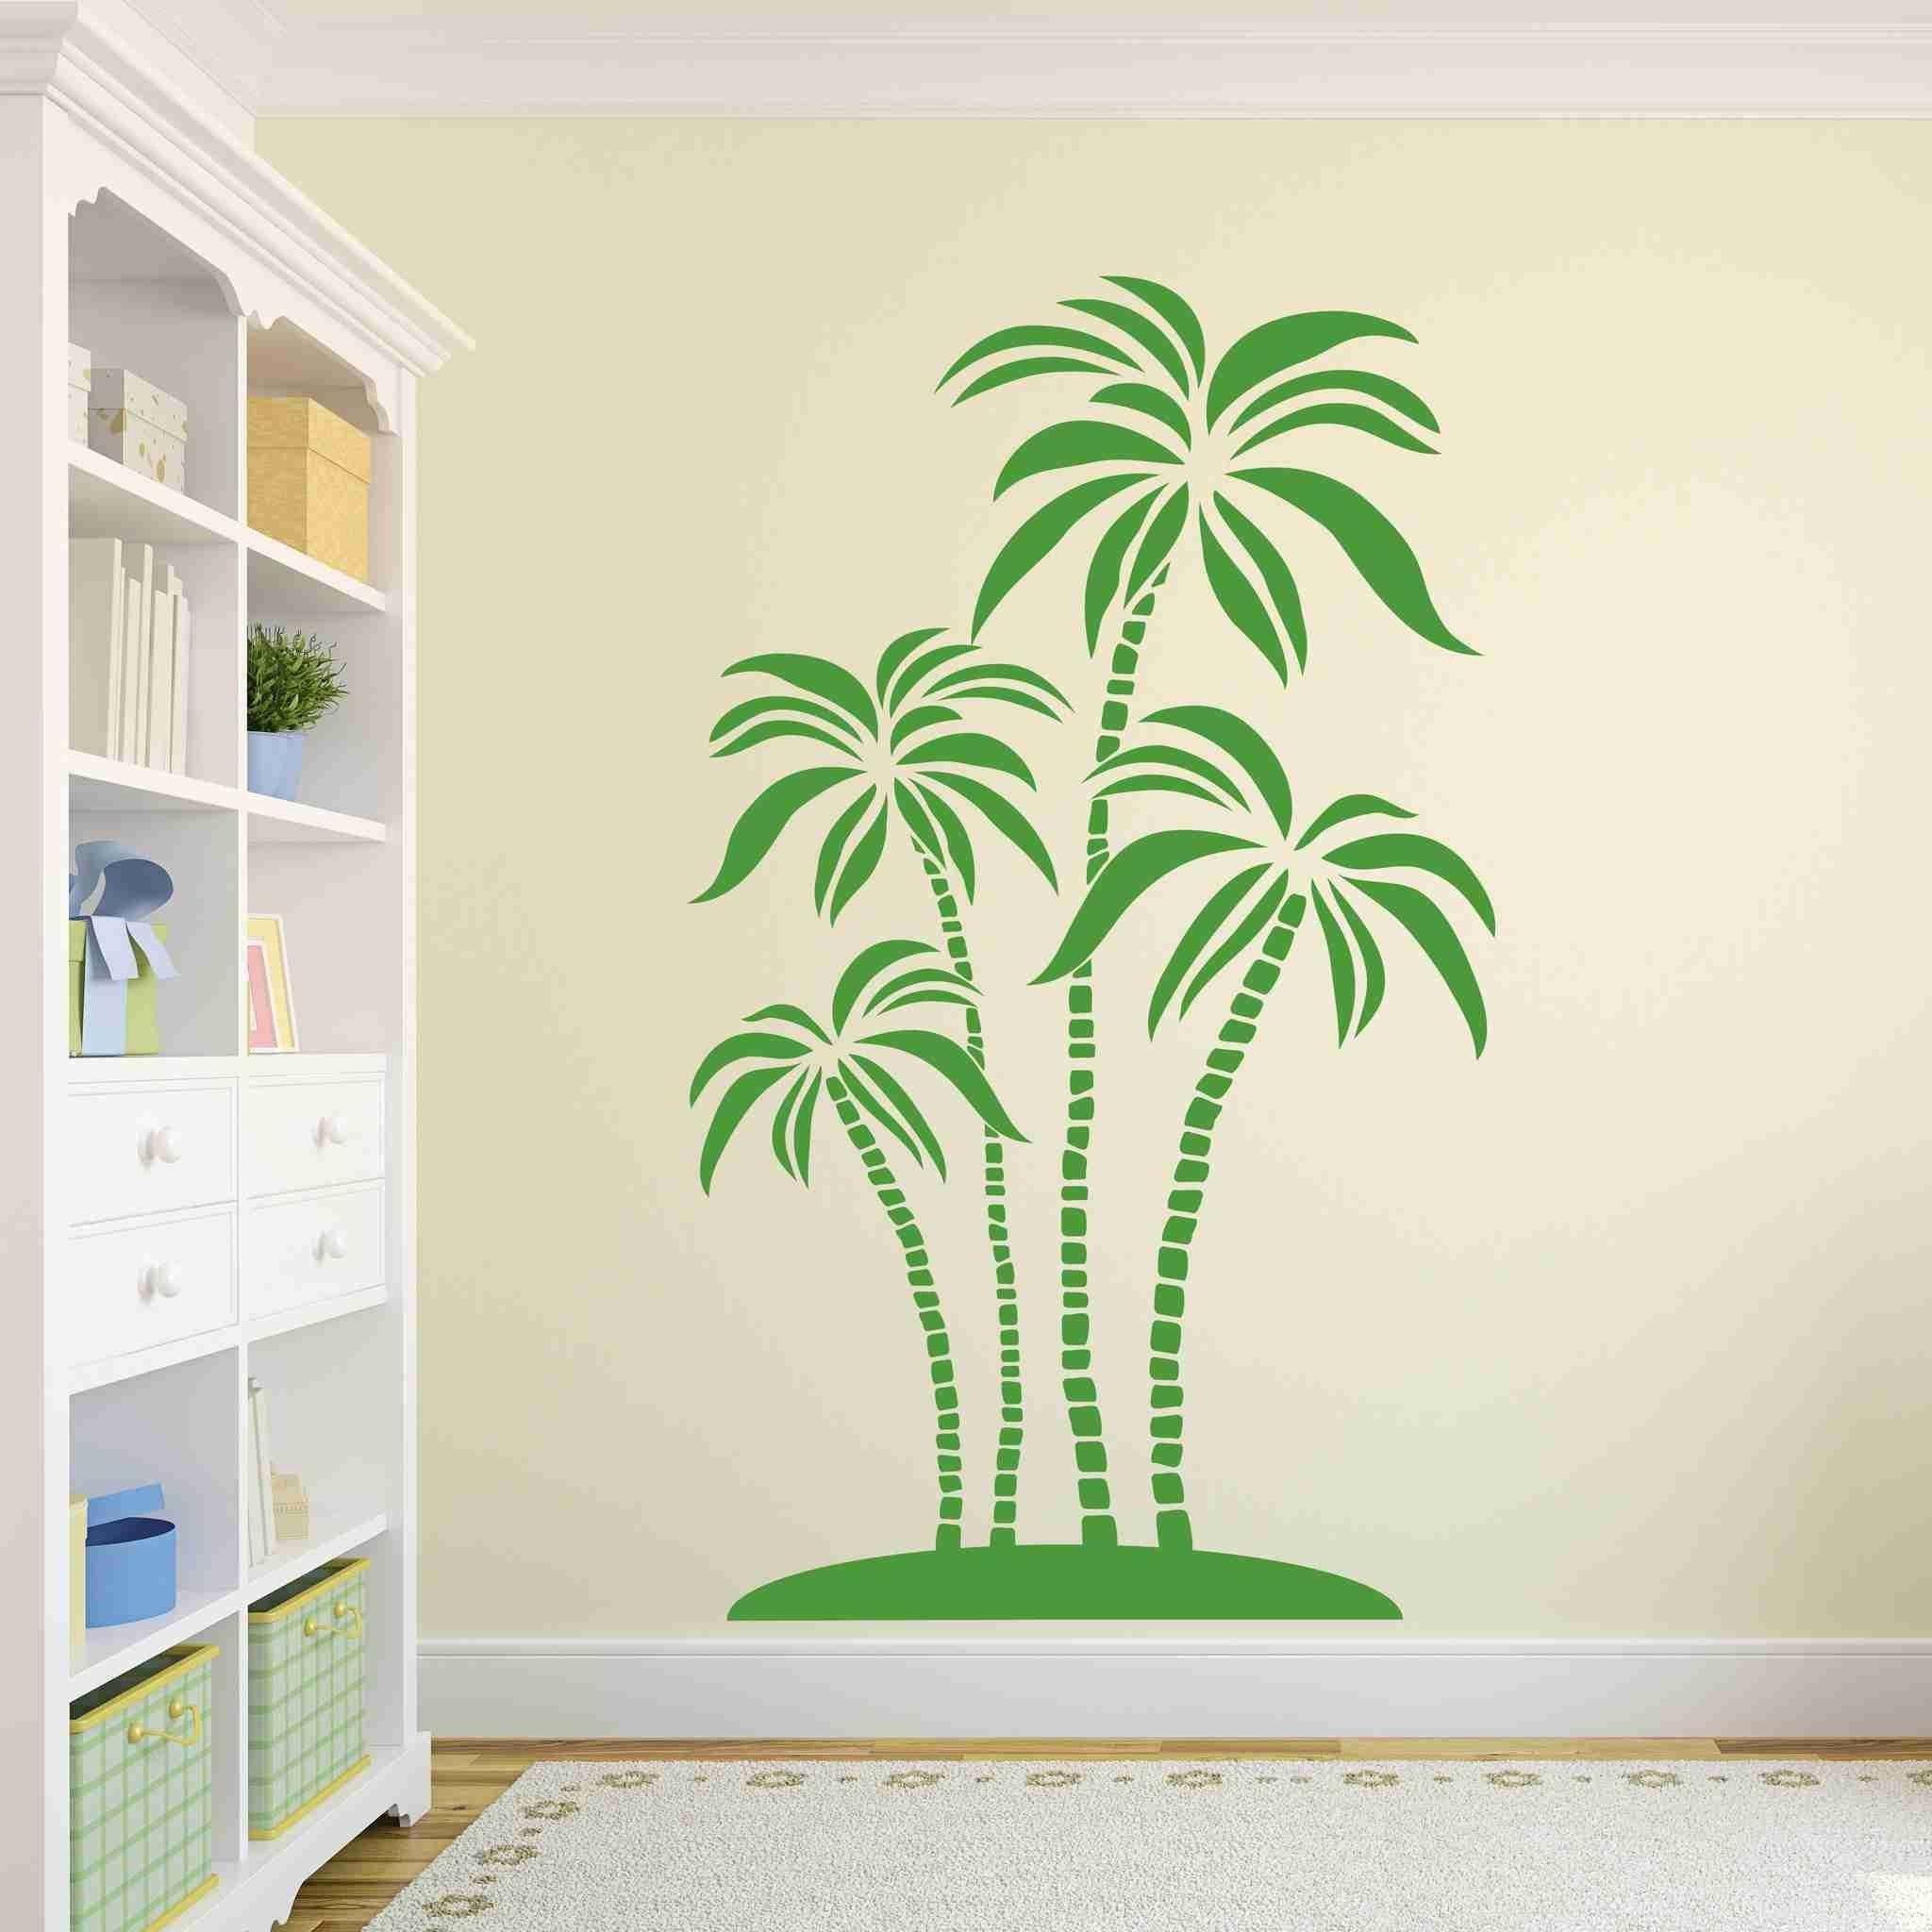 Abstract Palms Wall Decal